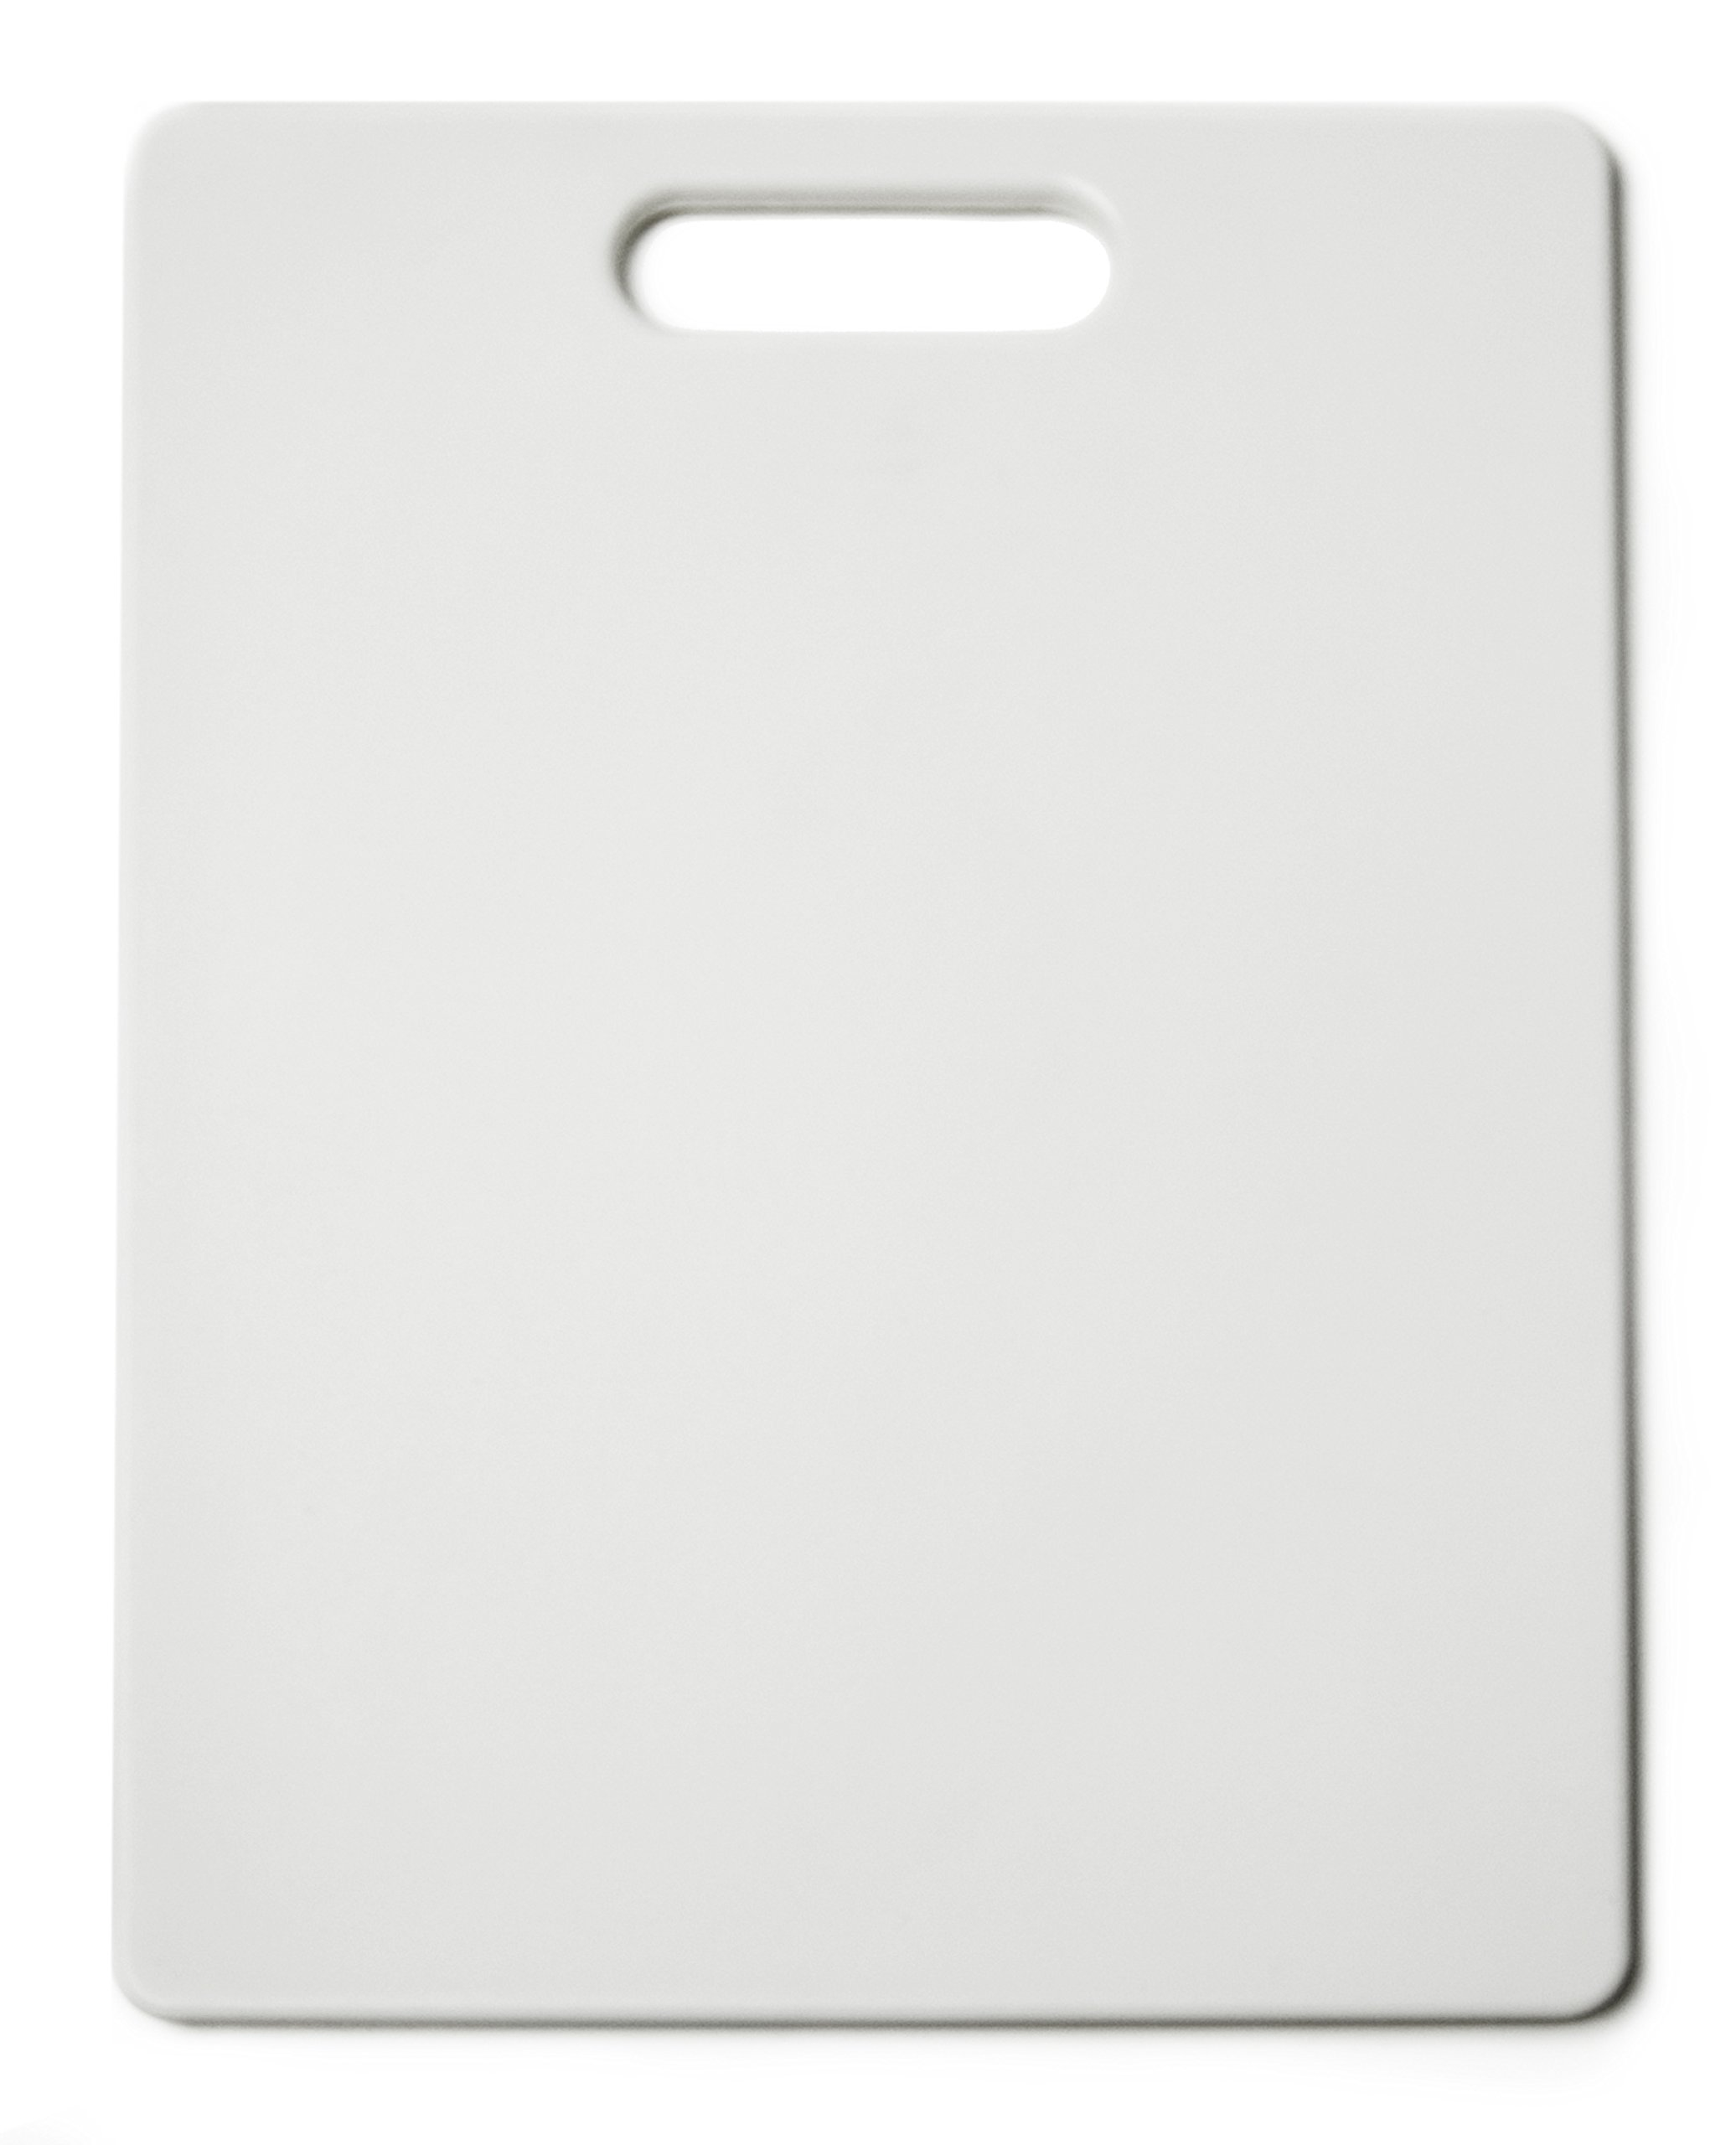 Architec Original Gripper Cutting Board, 11'' by 14'', White, Patented Non-Slip Technology and Dishwasher Safe Cutting Board